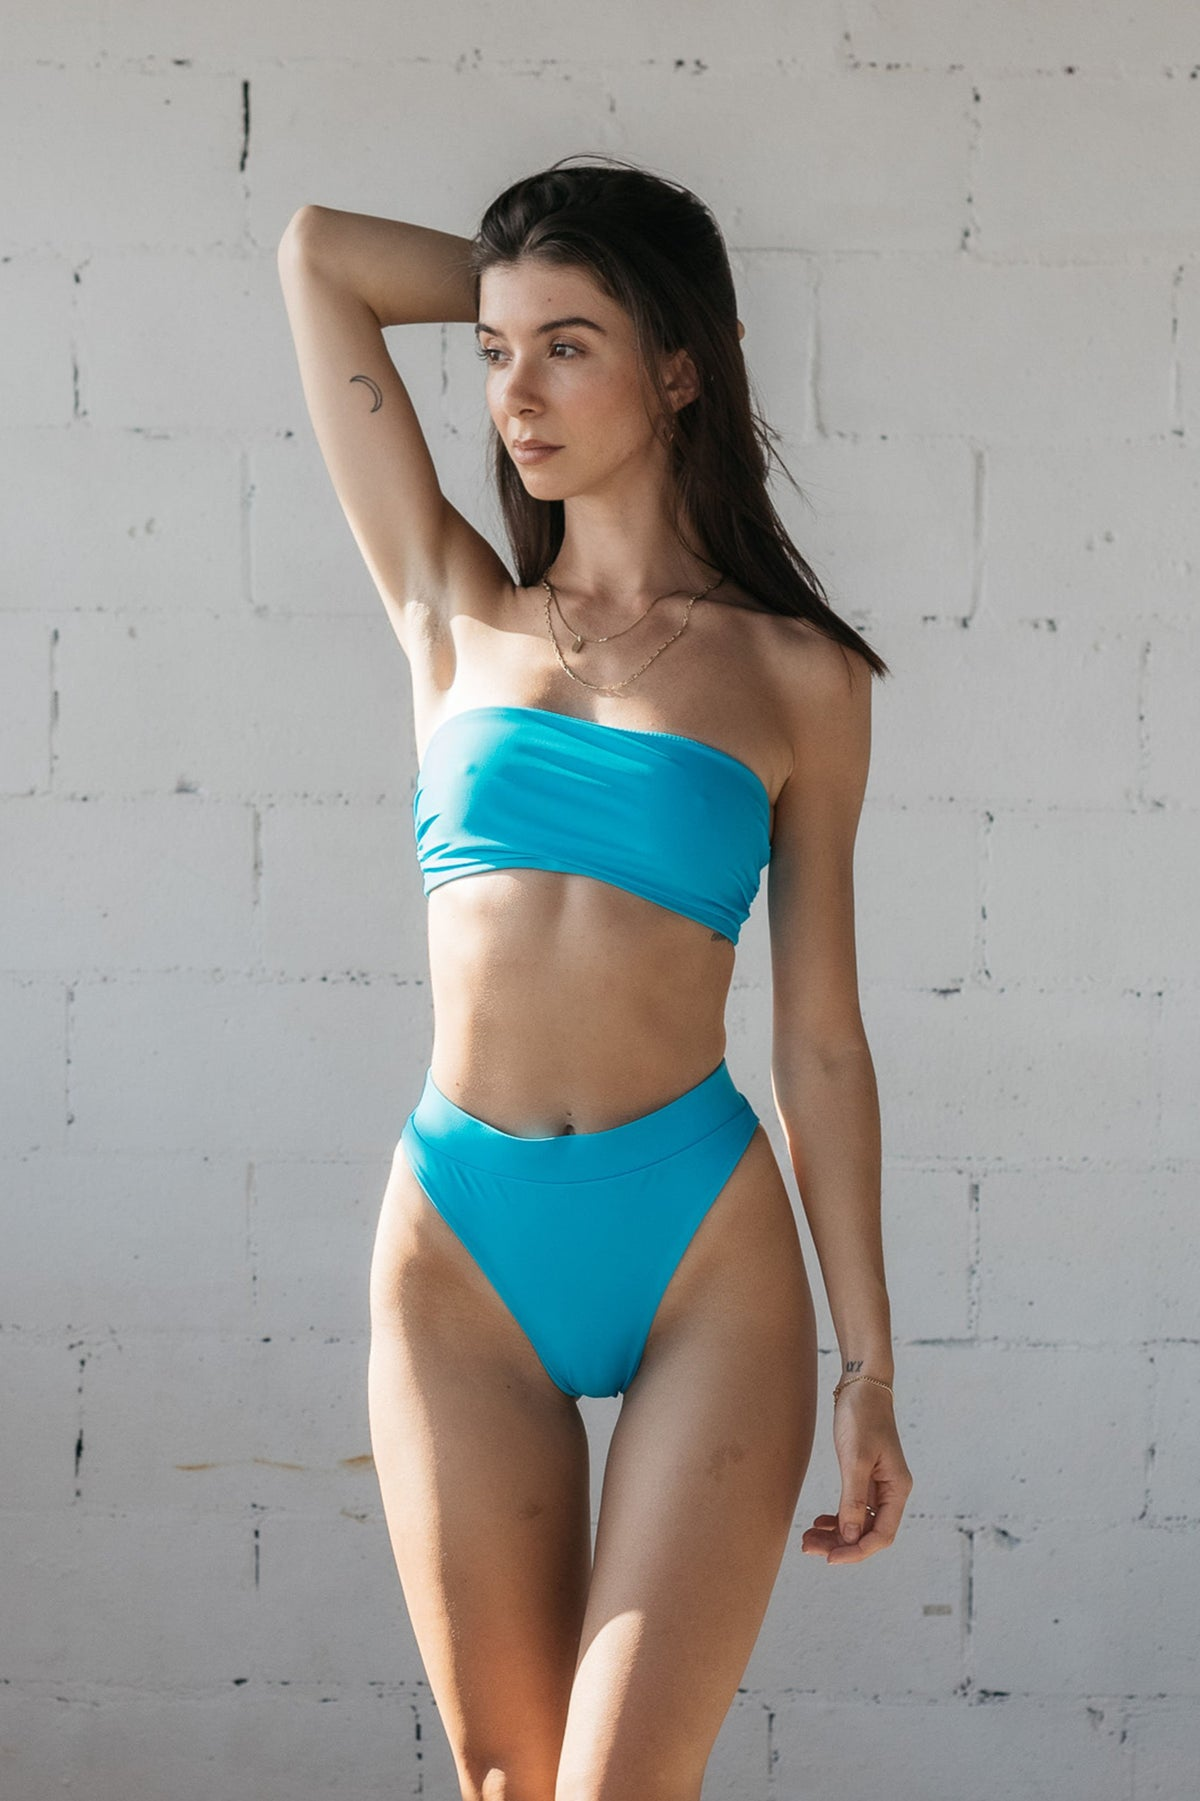 A woman standing in front of a white brick wall wearing bright turquoise high cut bikini bottoms with a matching bright turquoise strapless bandeau bikini top.